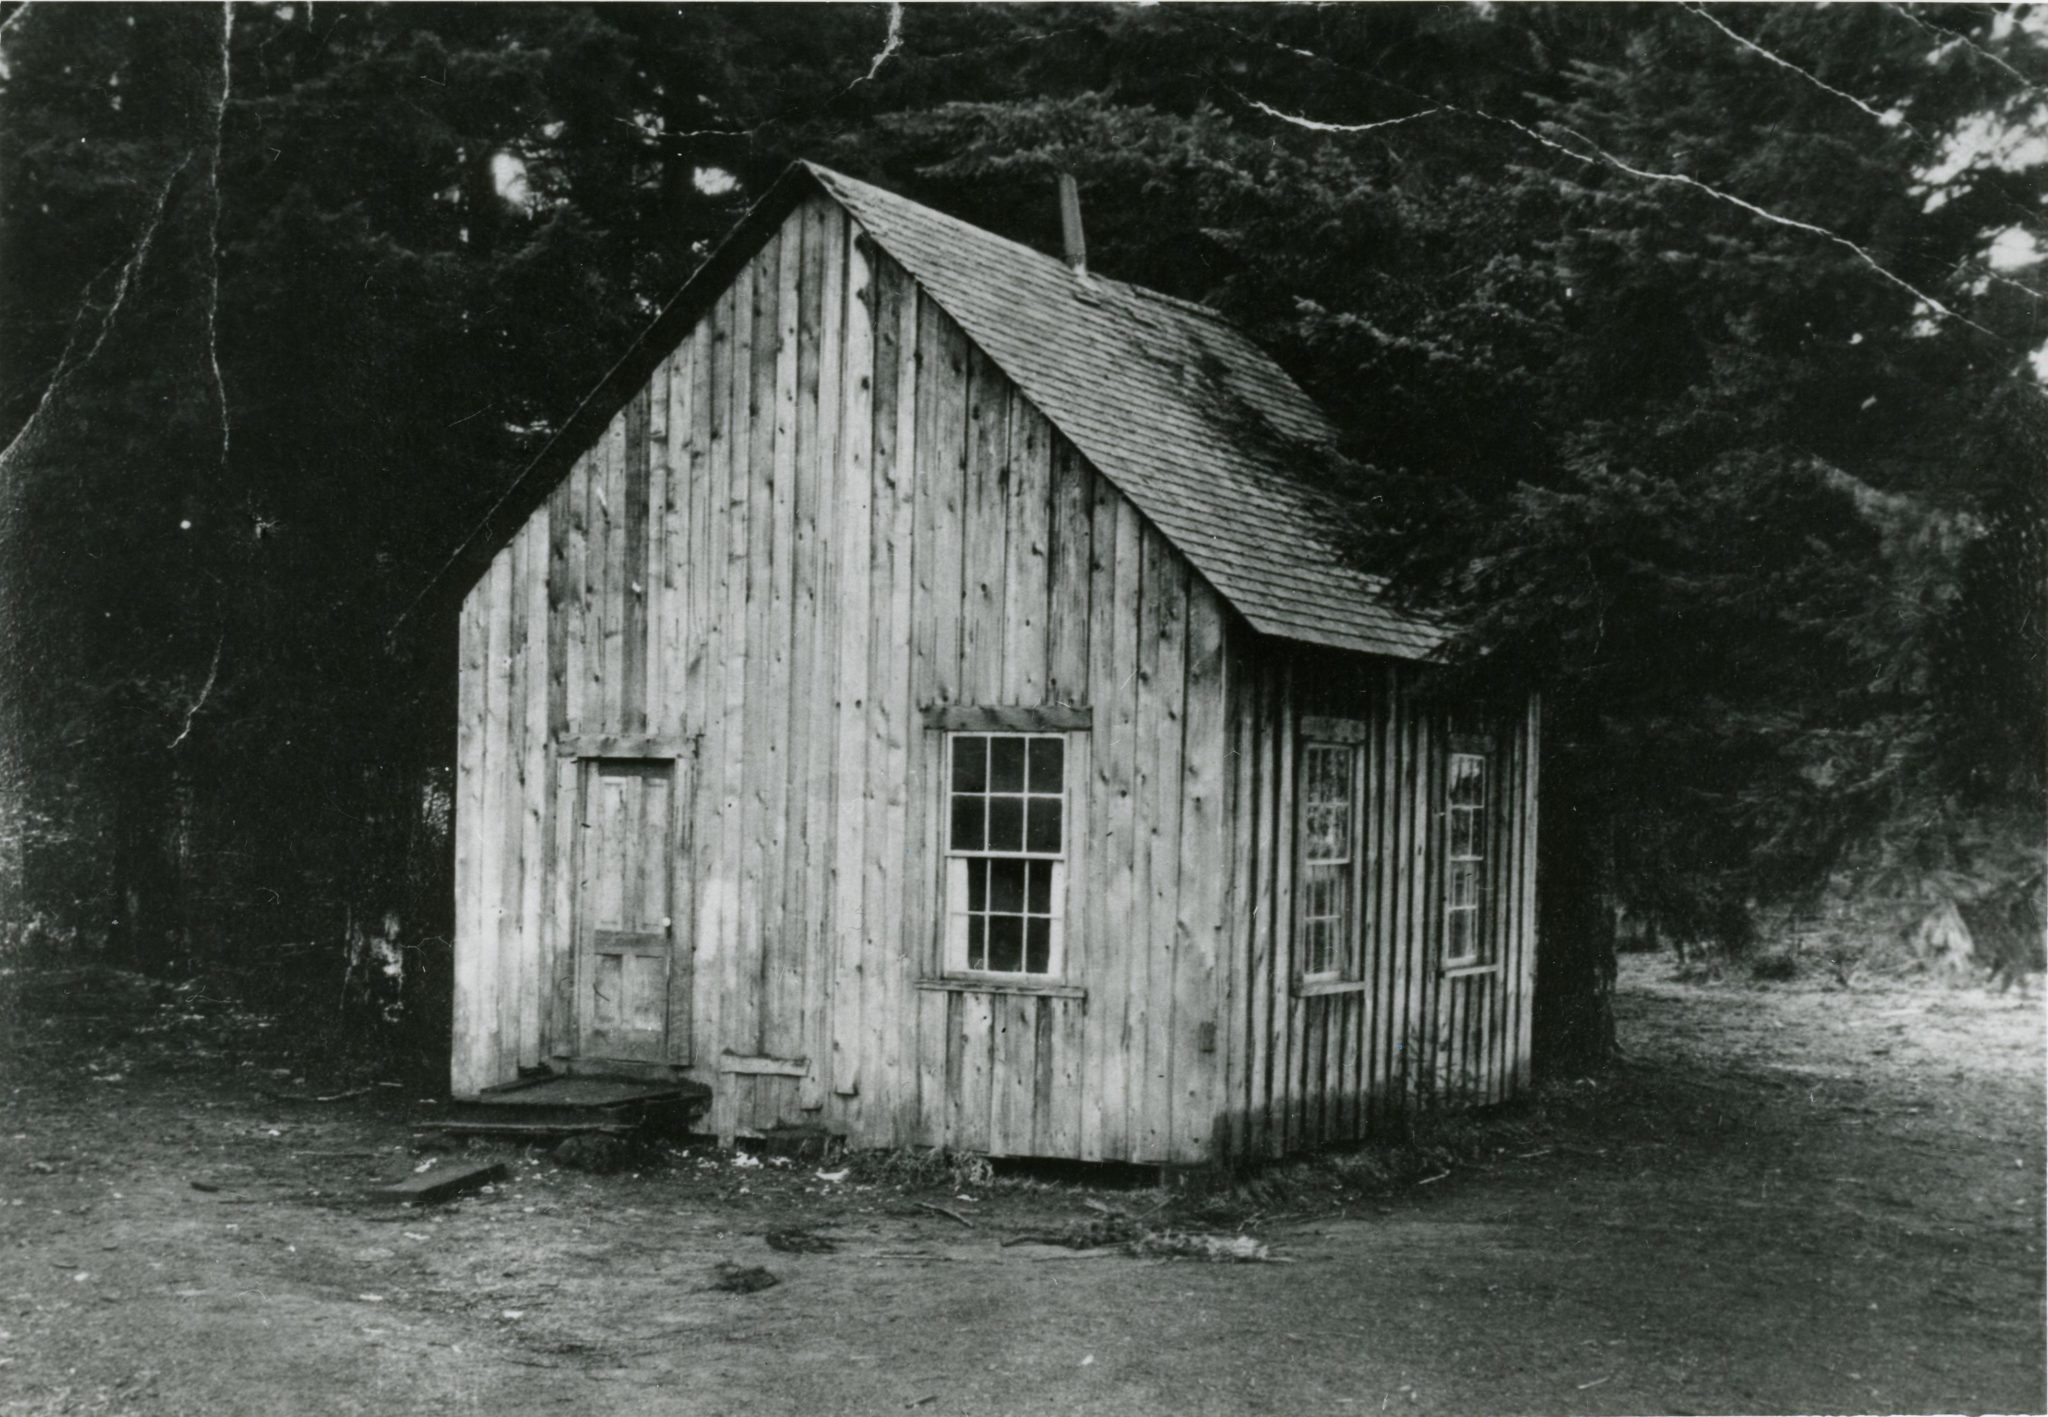 In Search Of 10 Thurston County Towns Lost To Time